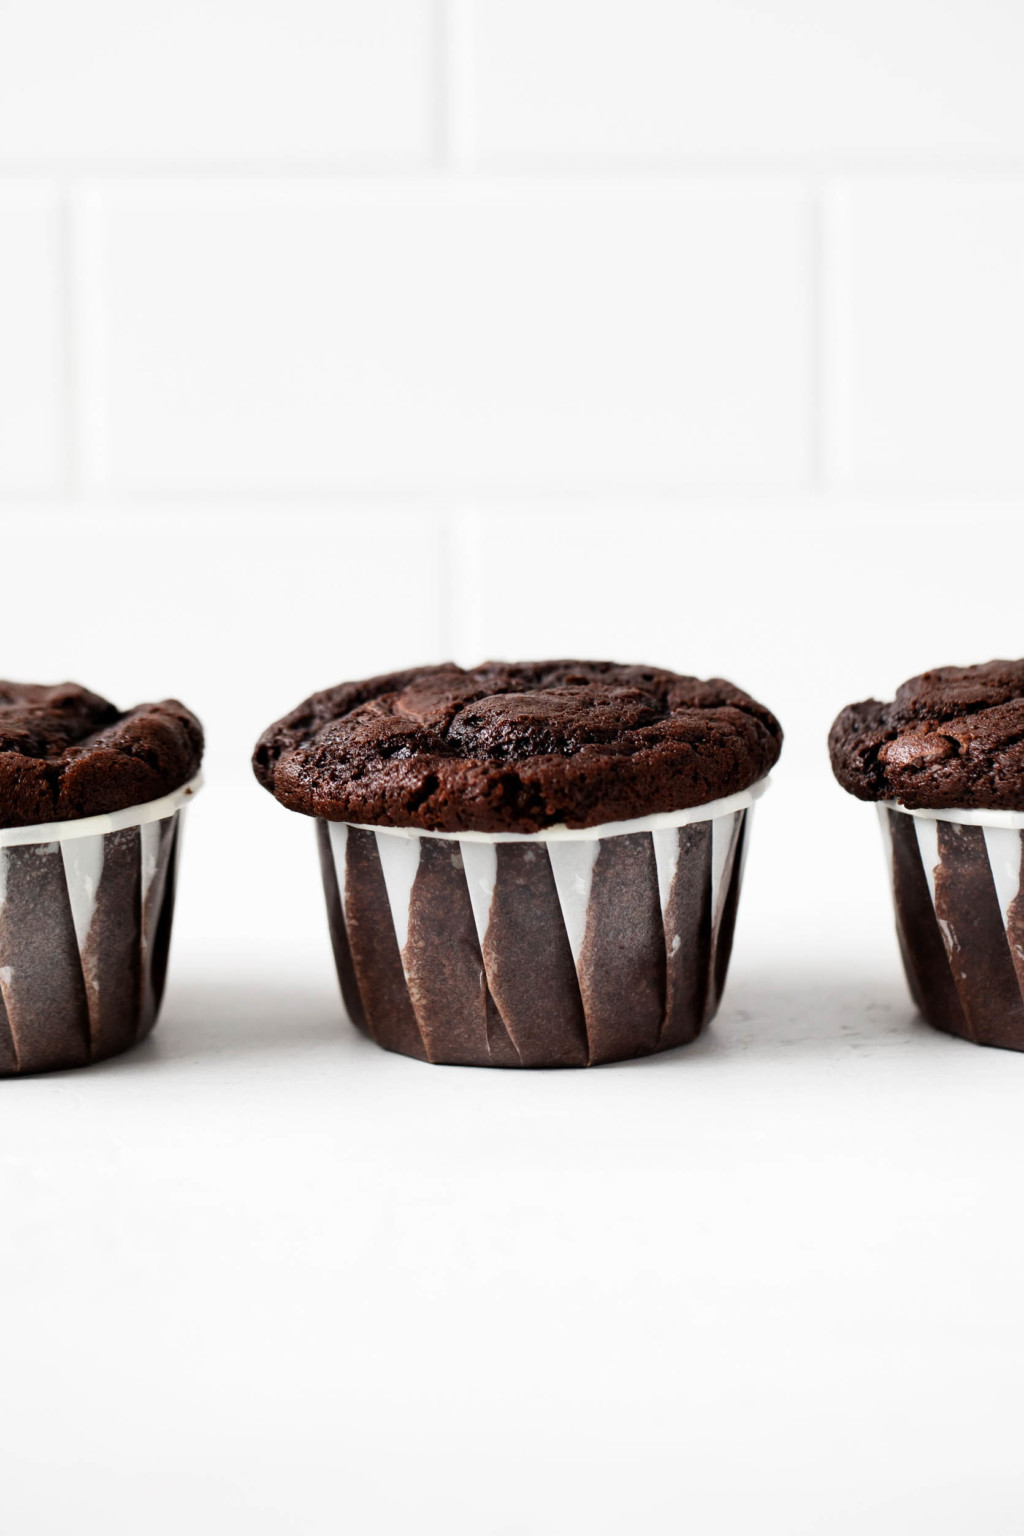 A few vegan double chocolate muffins have been lined up in a row, right in front of a white brick surface.